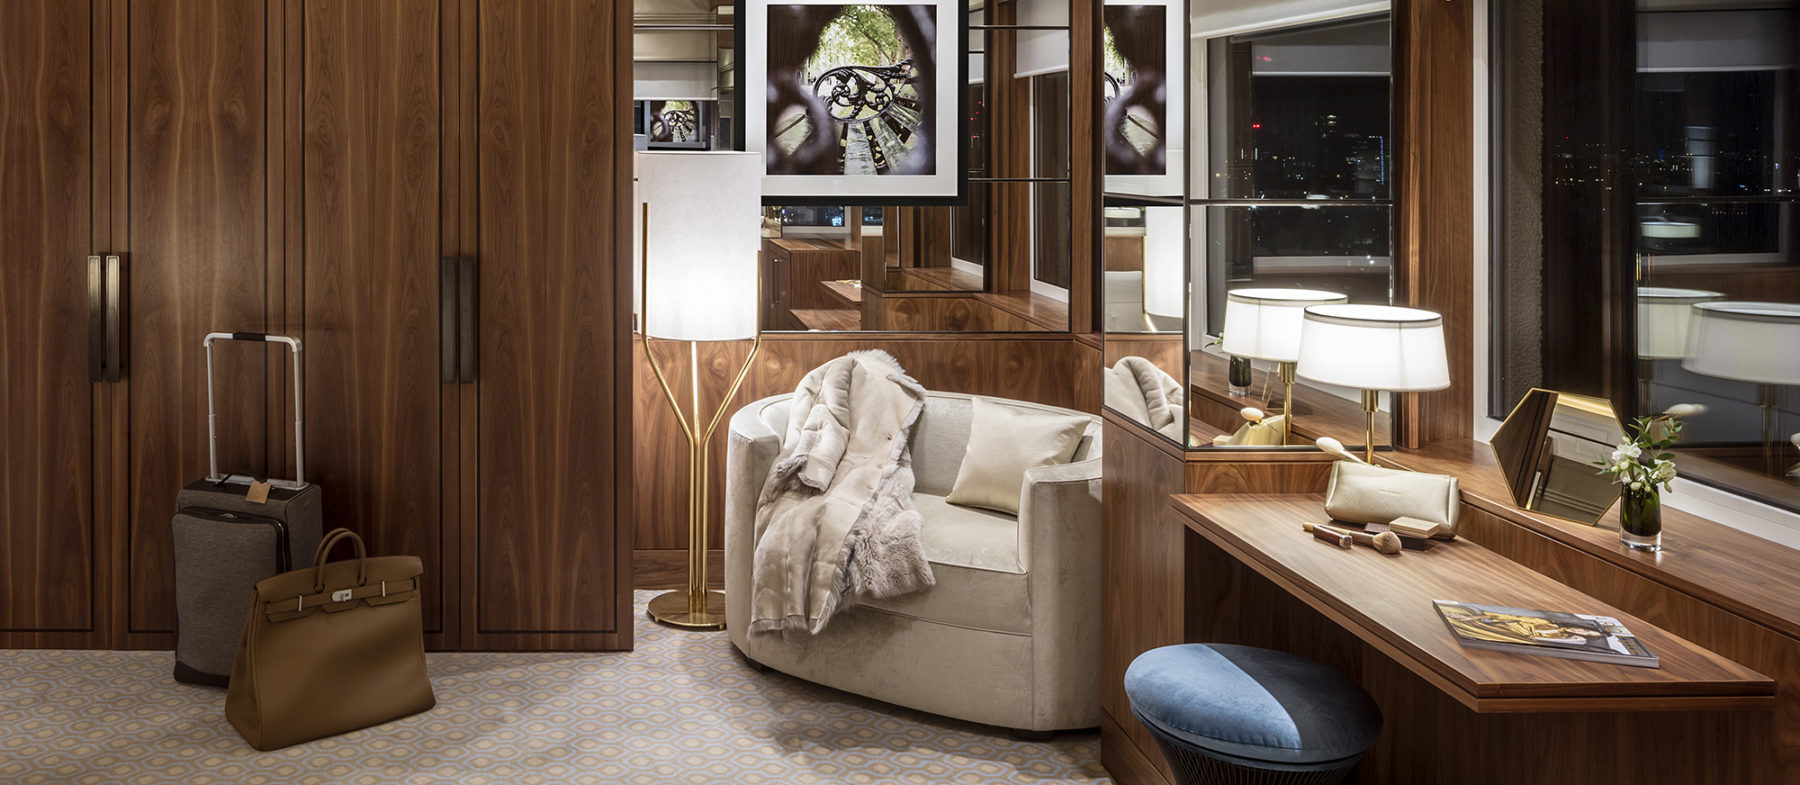 Signature Suite with view on London